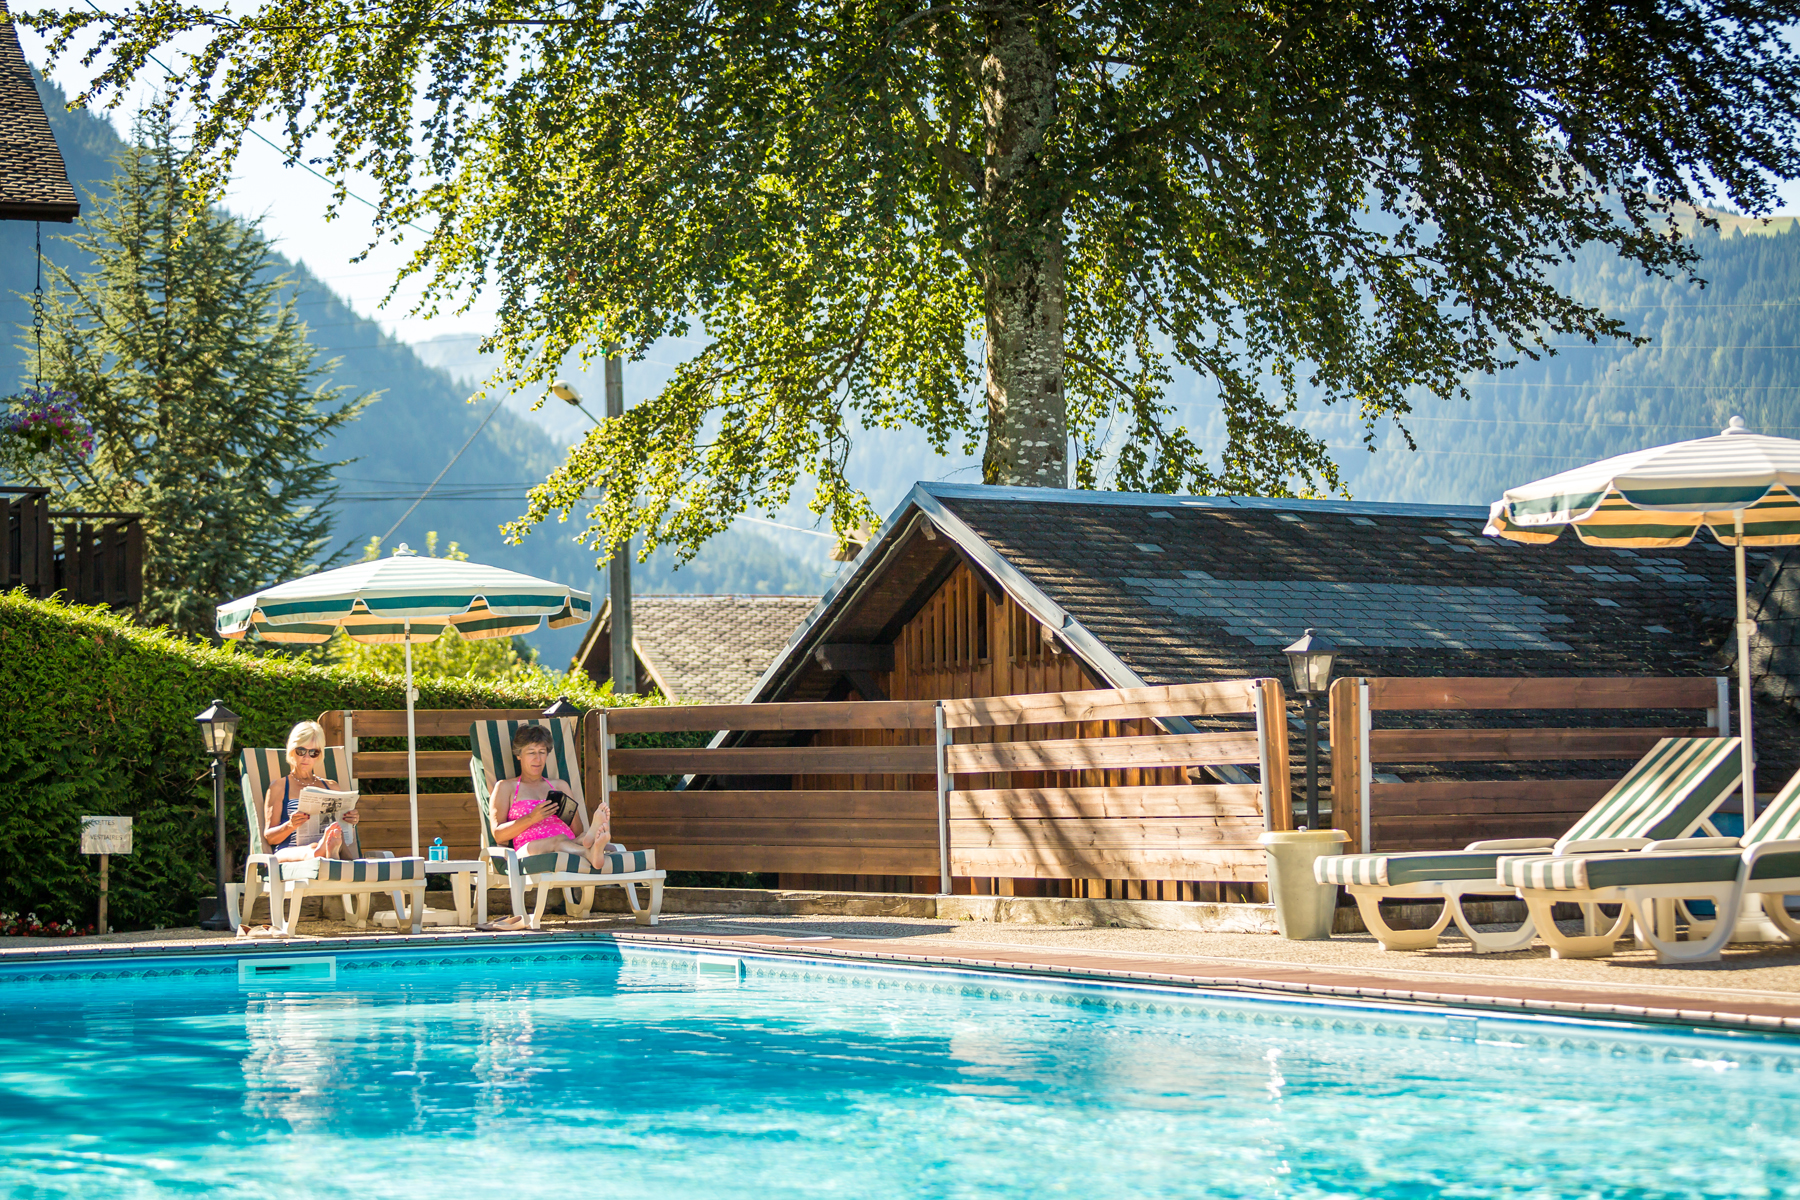 183/Spa/LeDahu_PiscineExt_11_poolside01.jpg